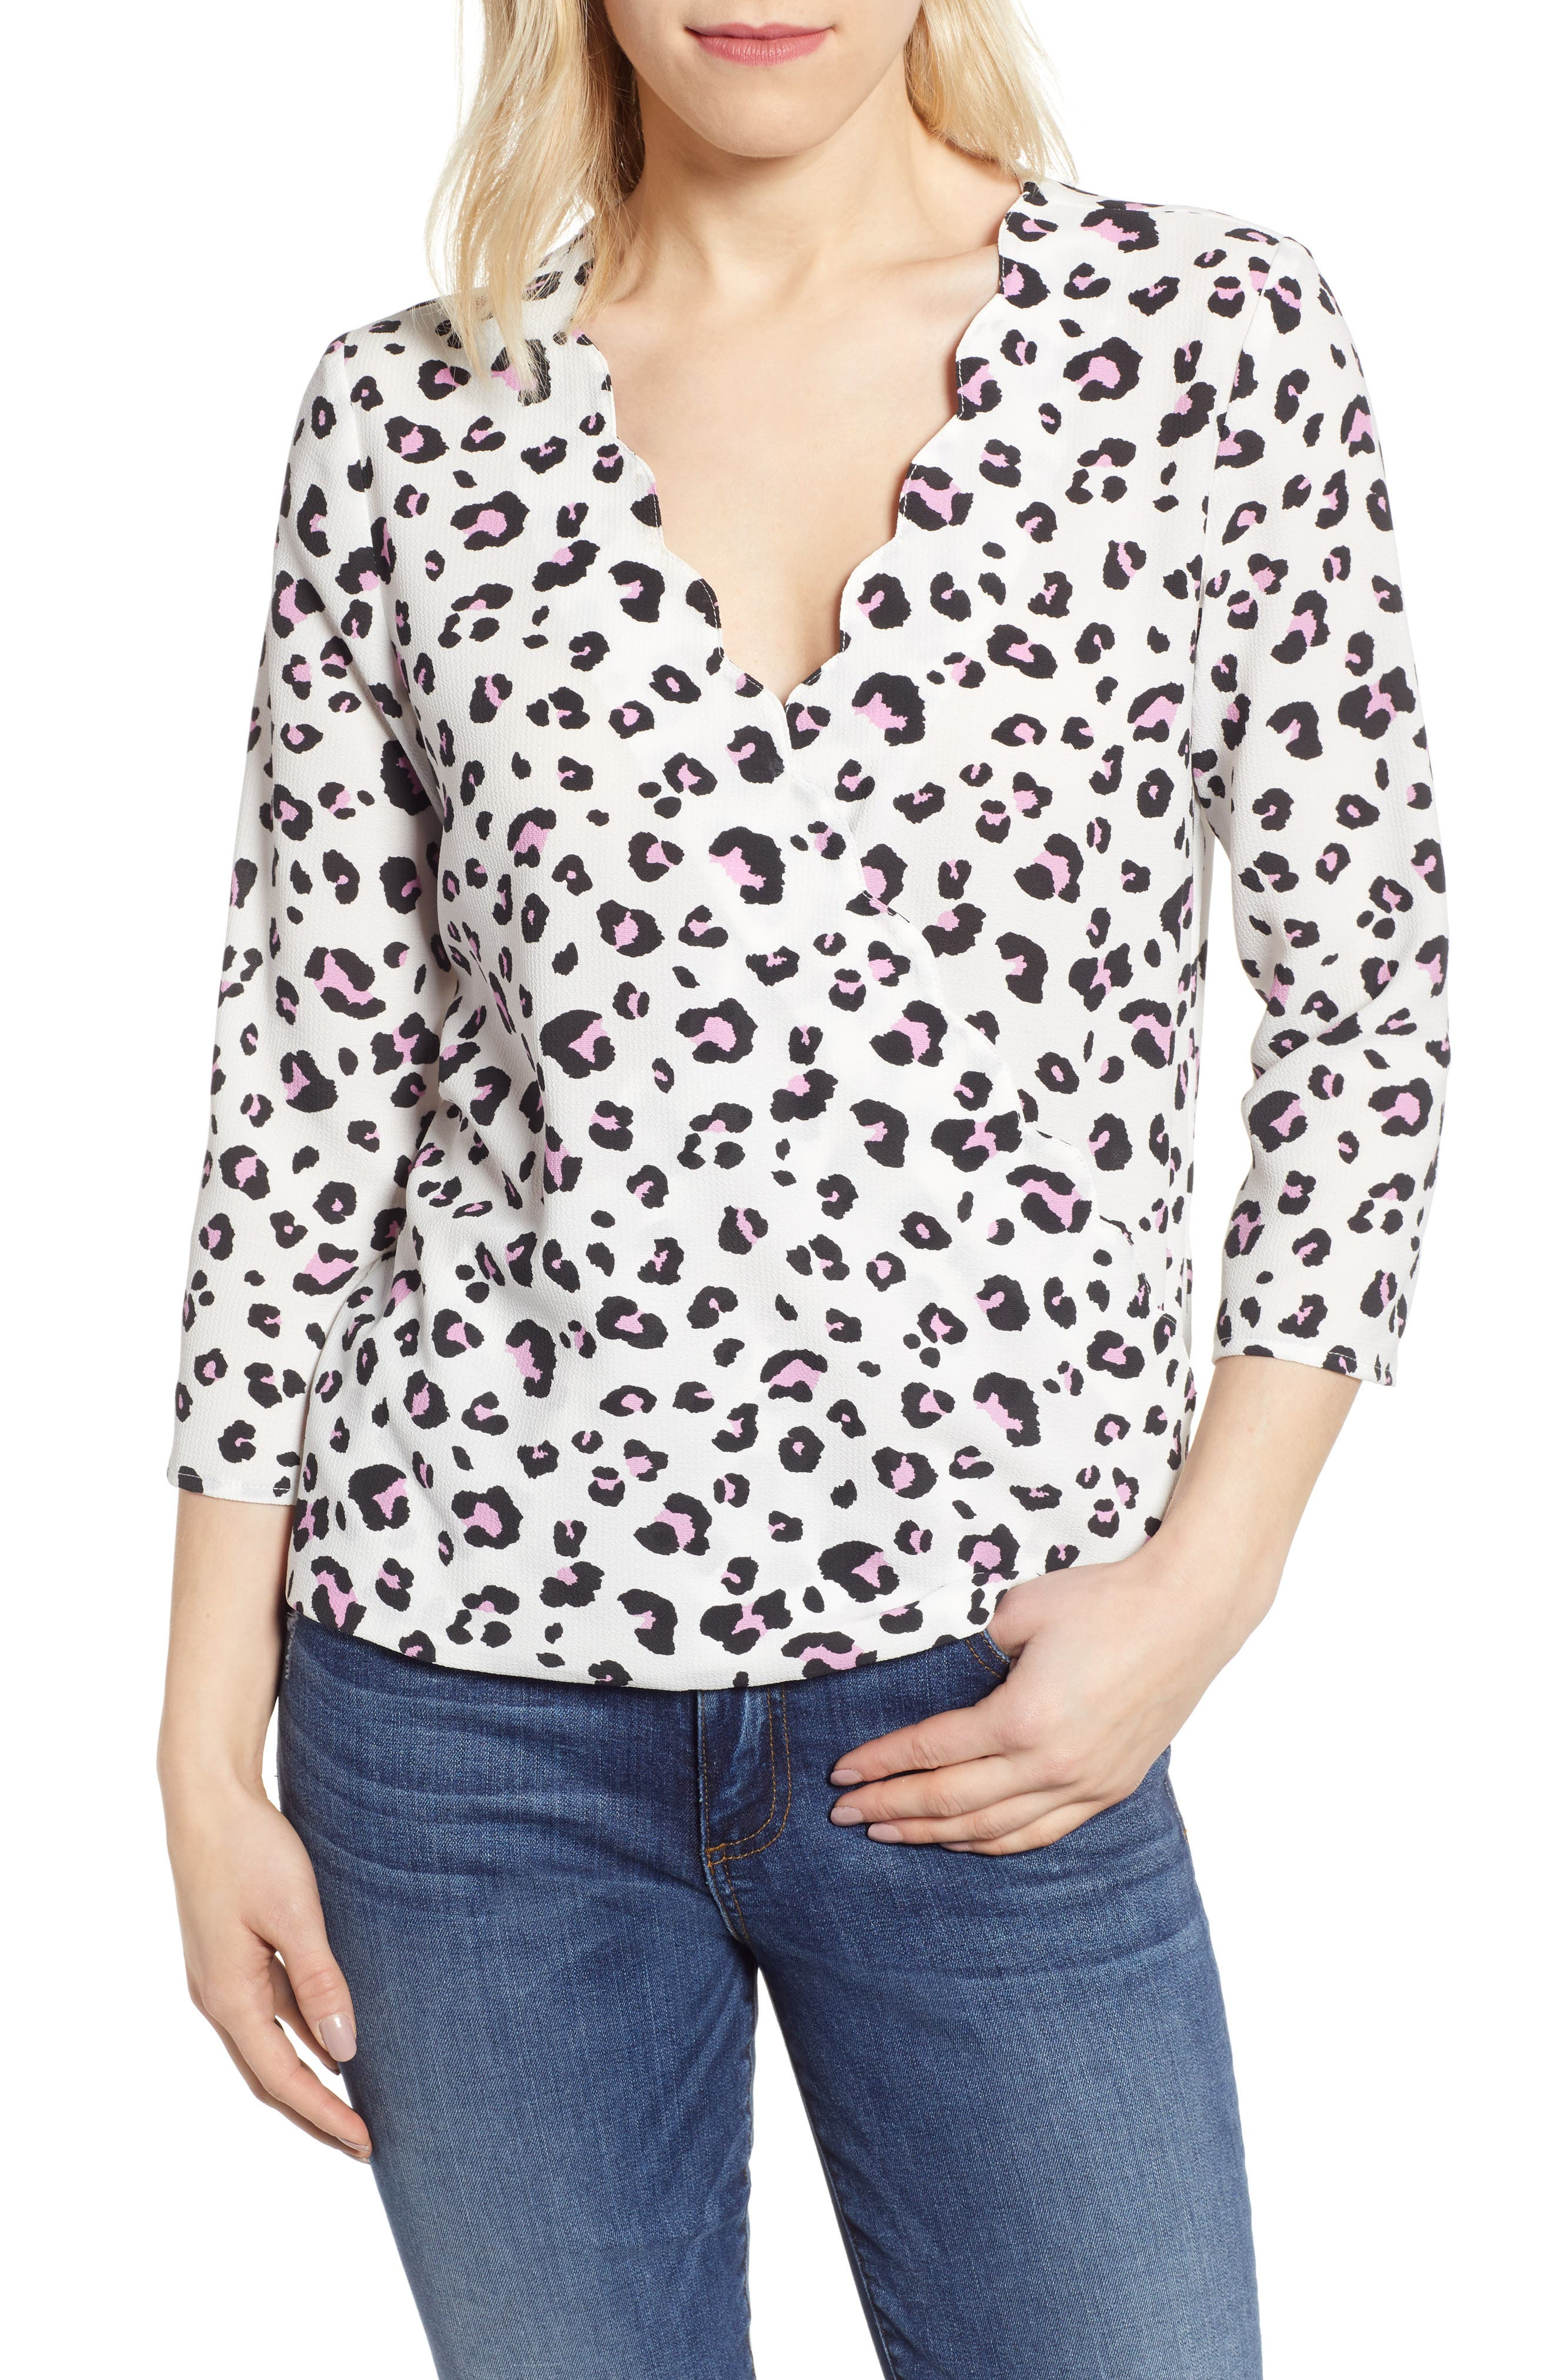 GIBSON, x International Women's Day Rebecca Scalloped Wrap Top, Main thumbnail 1, color, IVORY/ BLACK LEOPARD